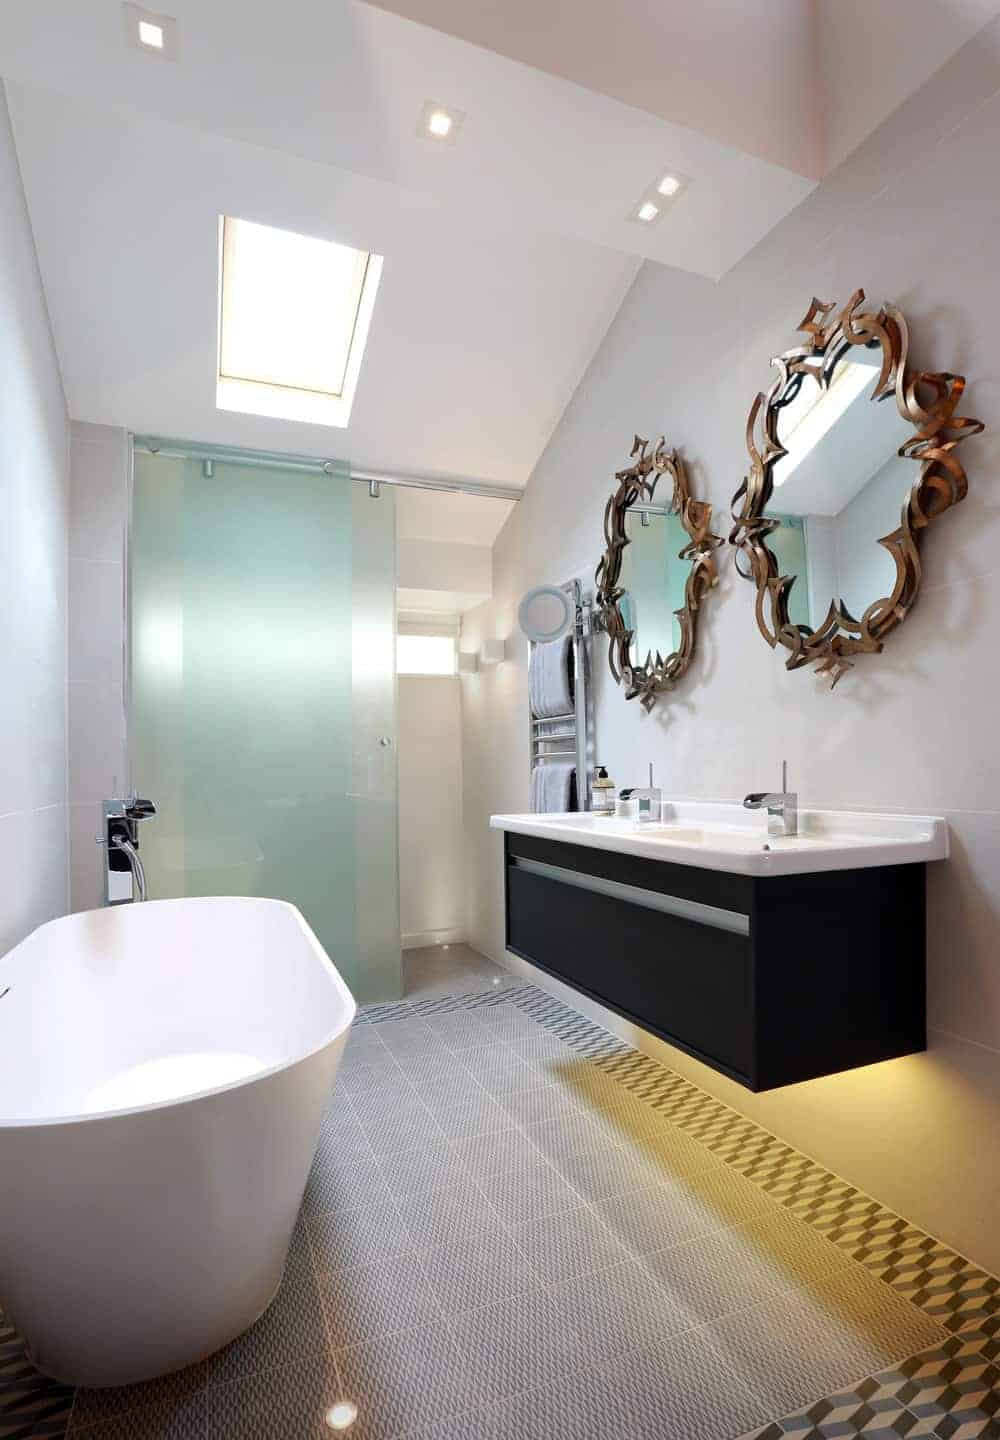 A freestanding tub sits across the black floating vanity with dual sink and stylish mirrors in this magnificent bathroom with a skylight and pattern tiled flooring bordered with geometric tiles.